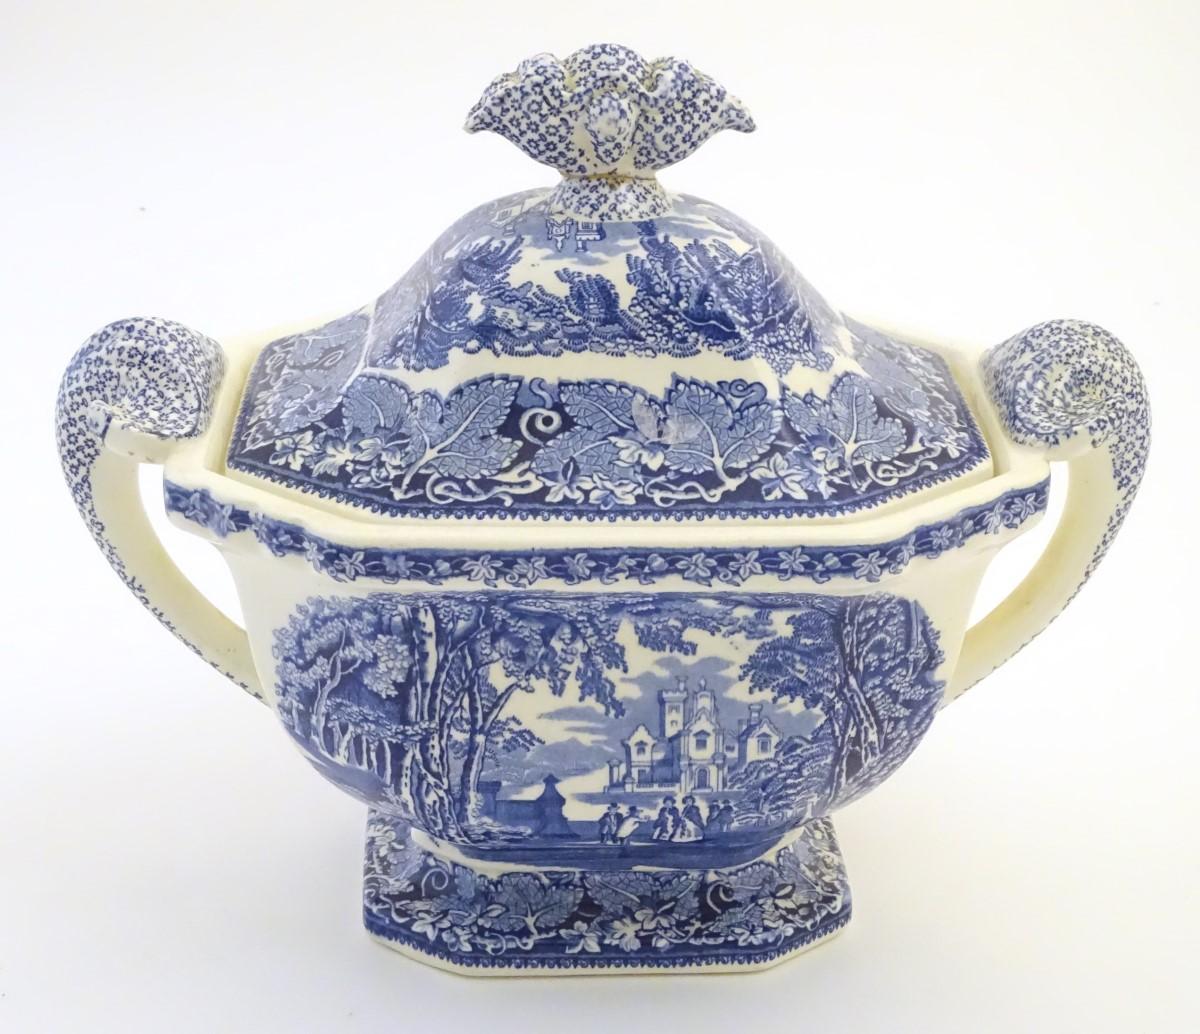 Lot 57 - A Mason's ironstone china blue and white lidded tureen with twin handles, in the pattern Vista.